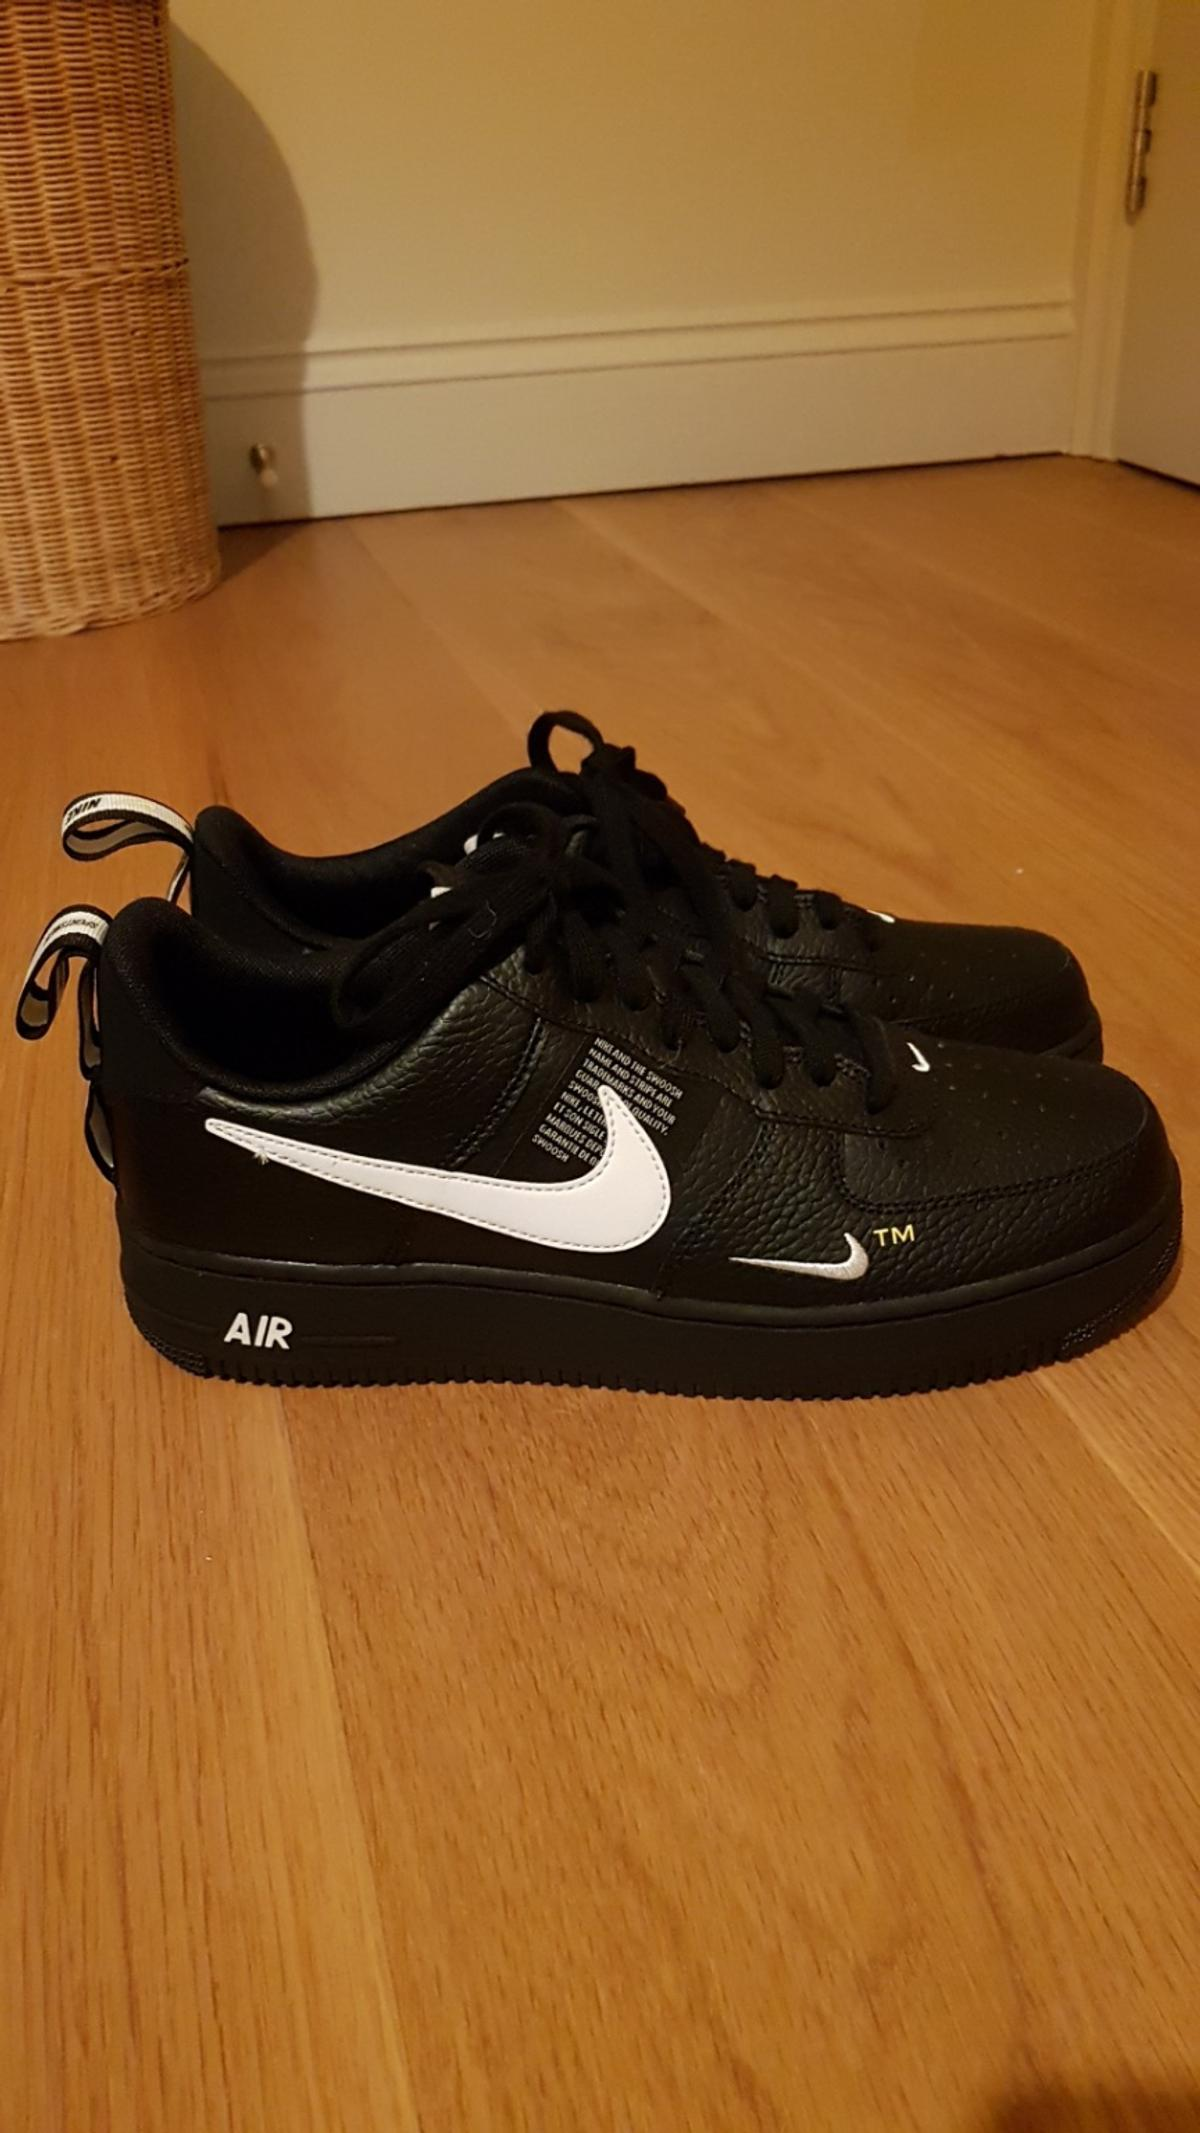 Nike Air Force 1 Low Trainers Uk 8